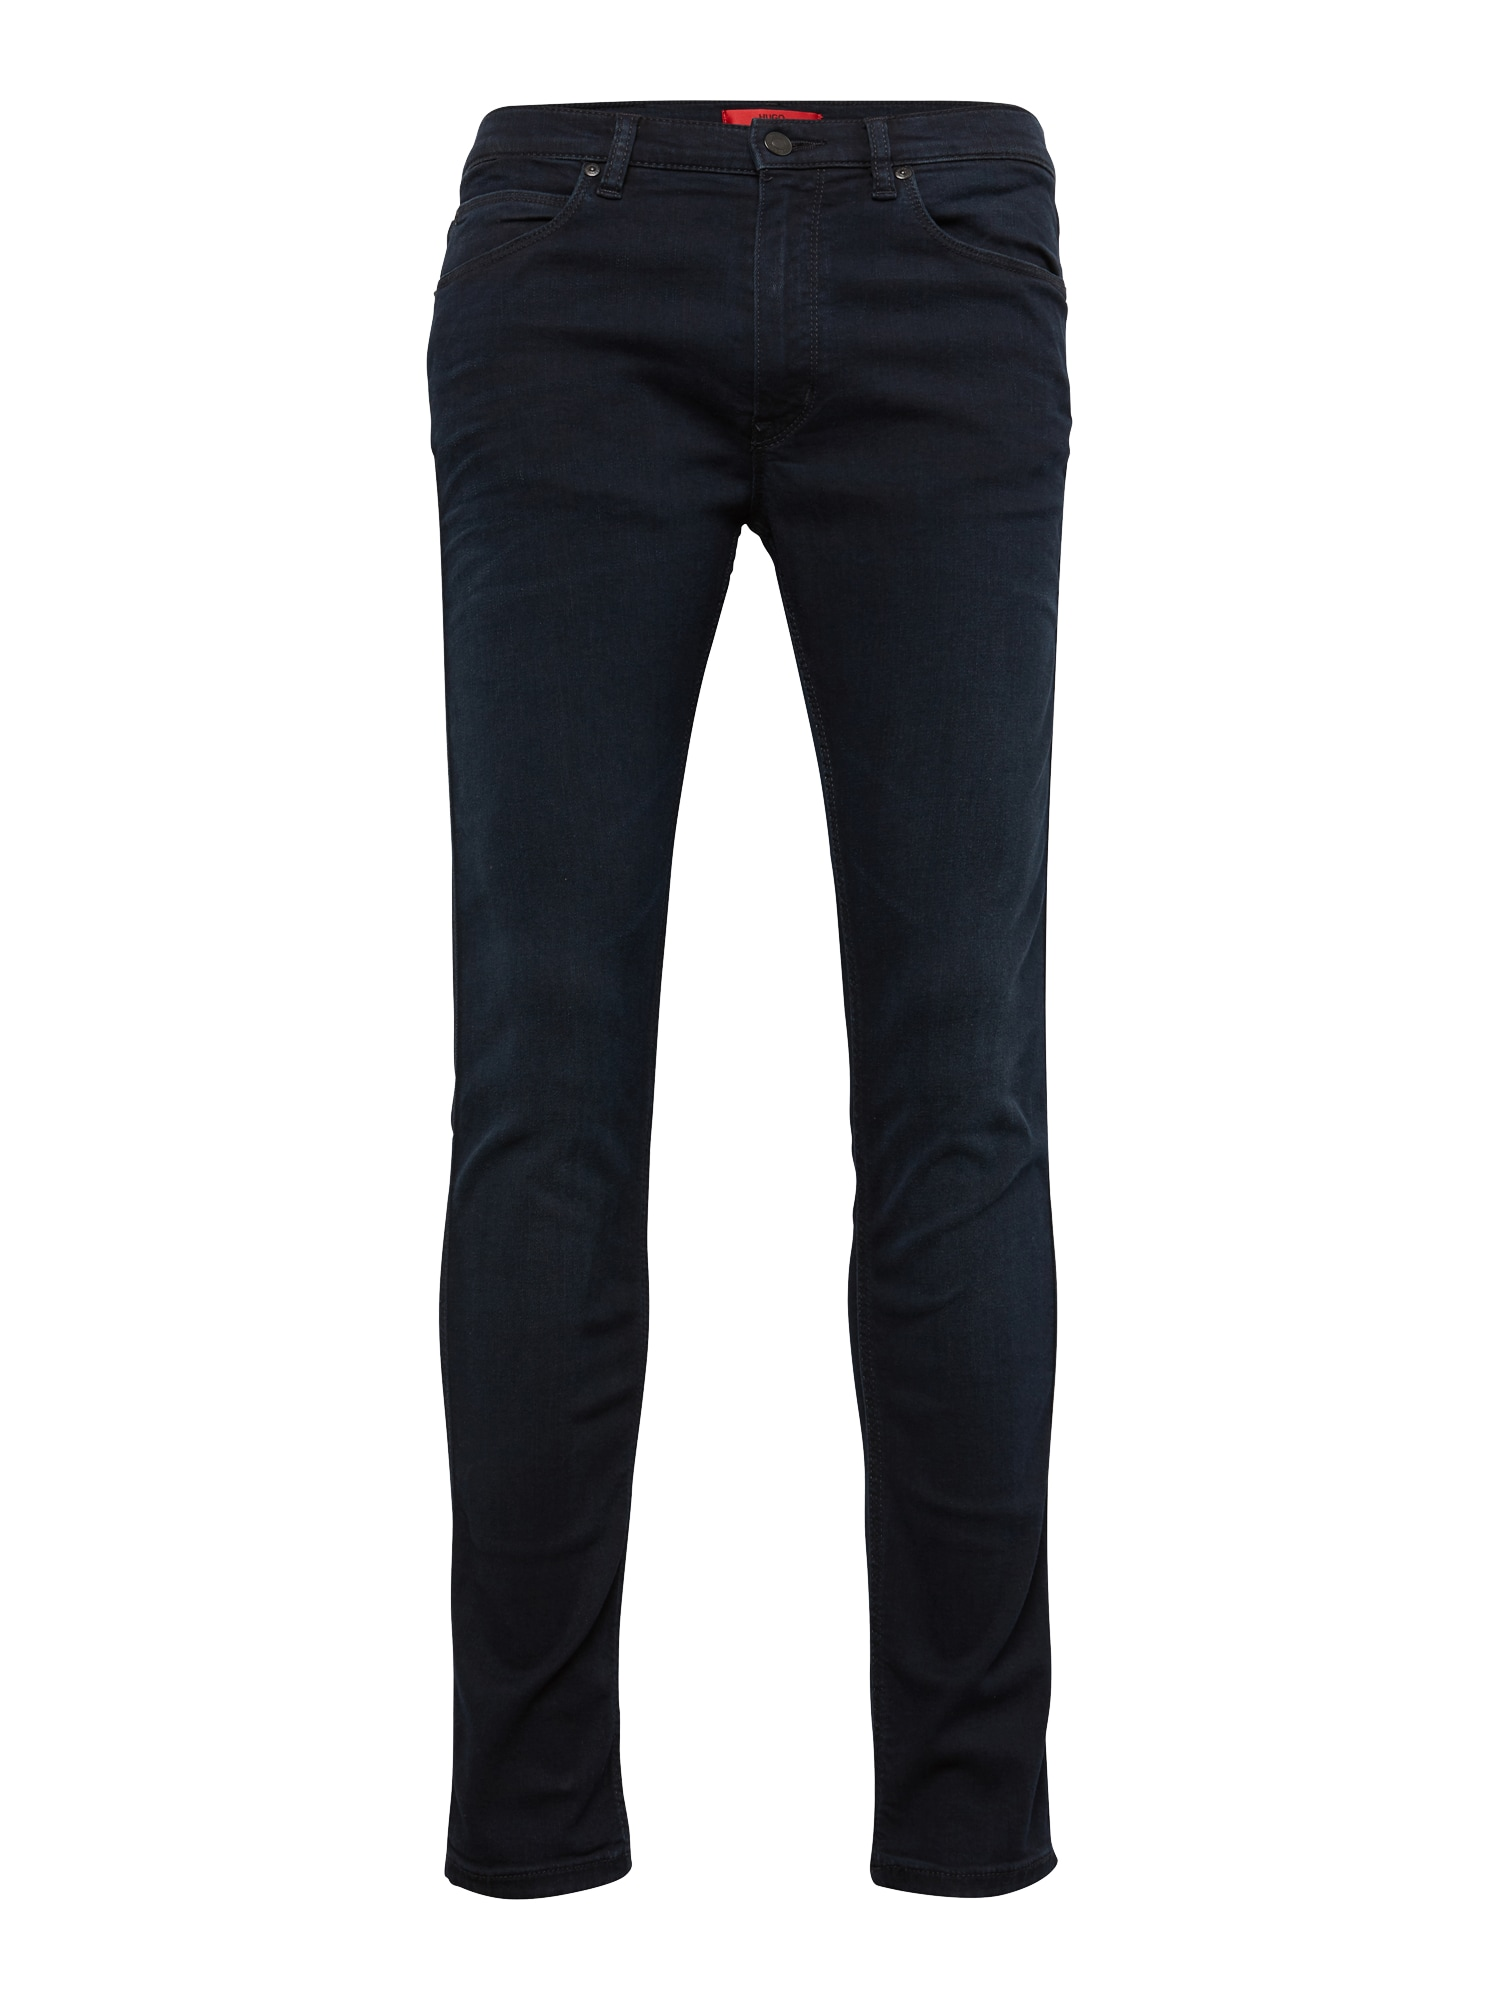 Jeans ´734´